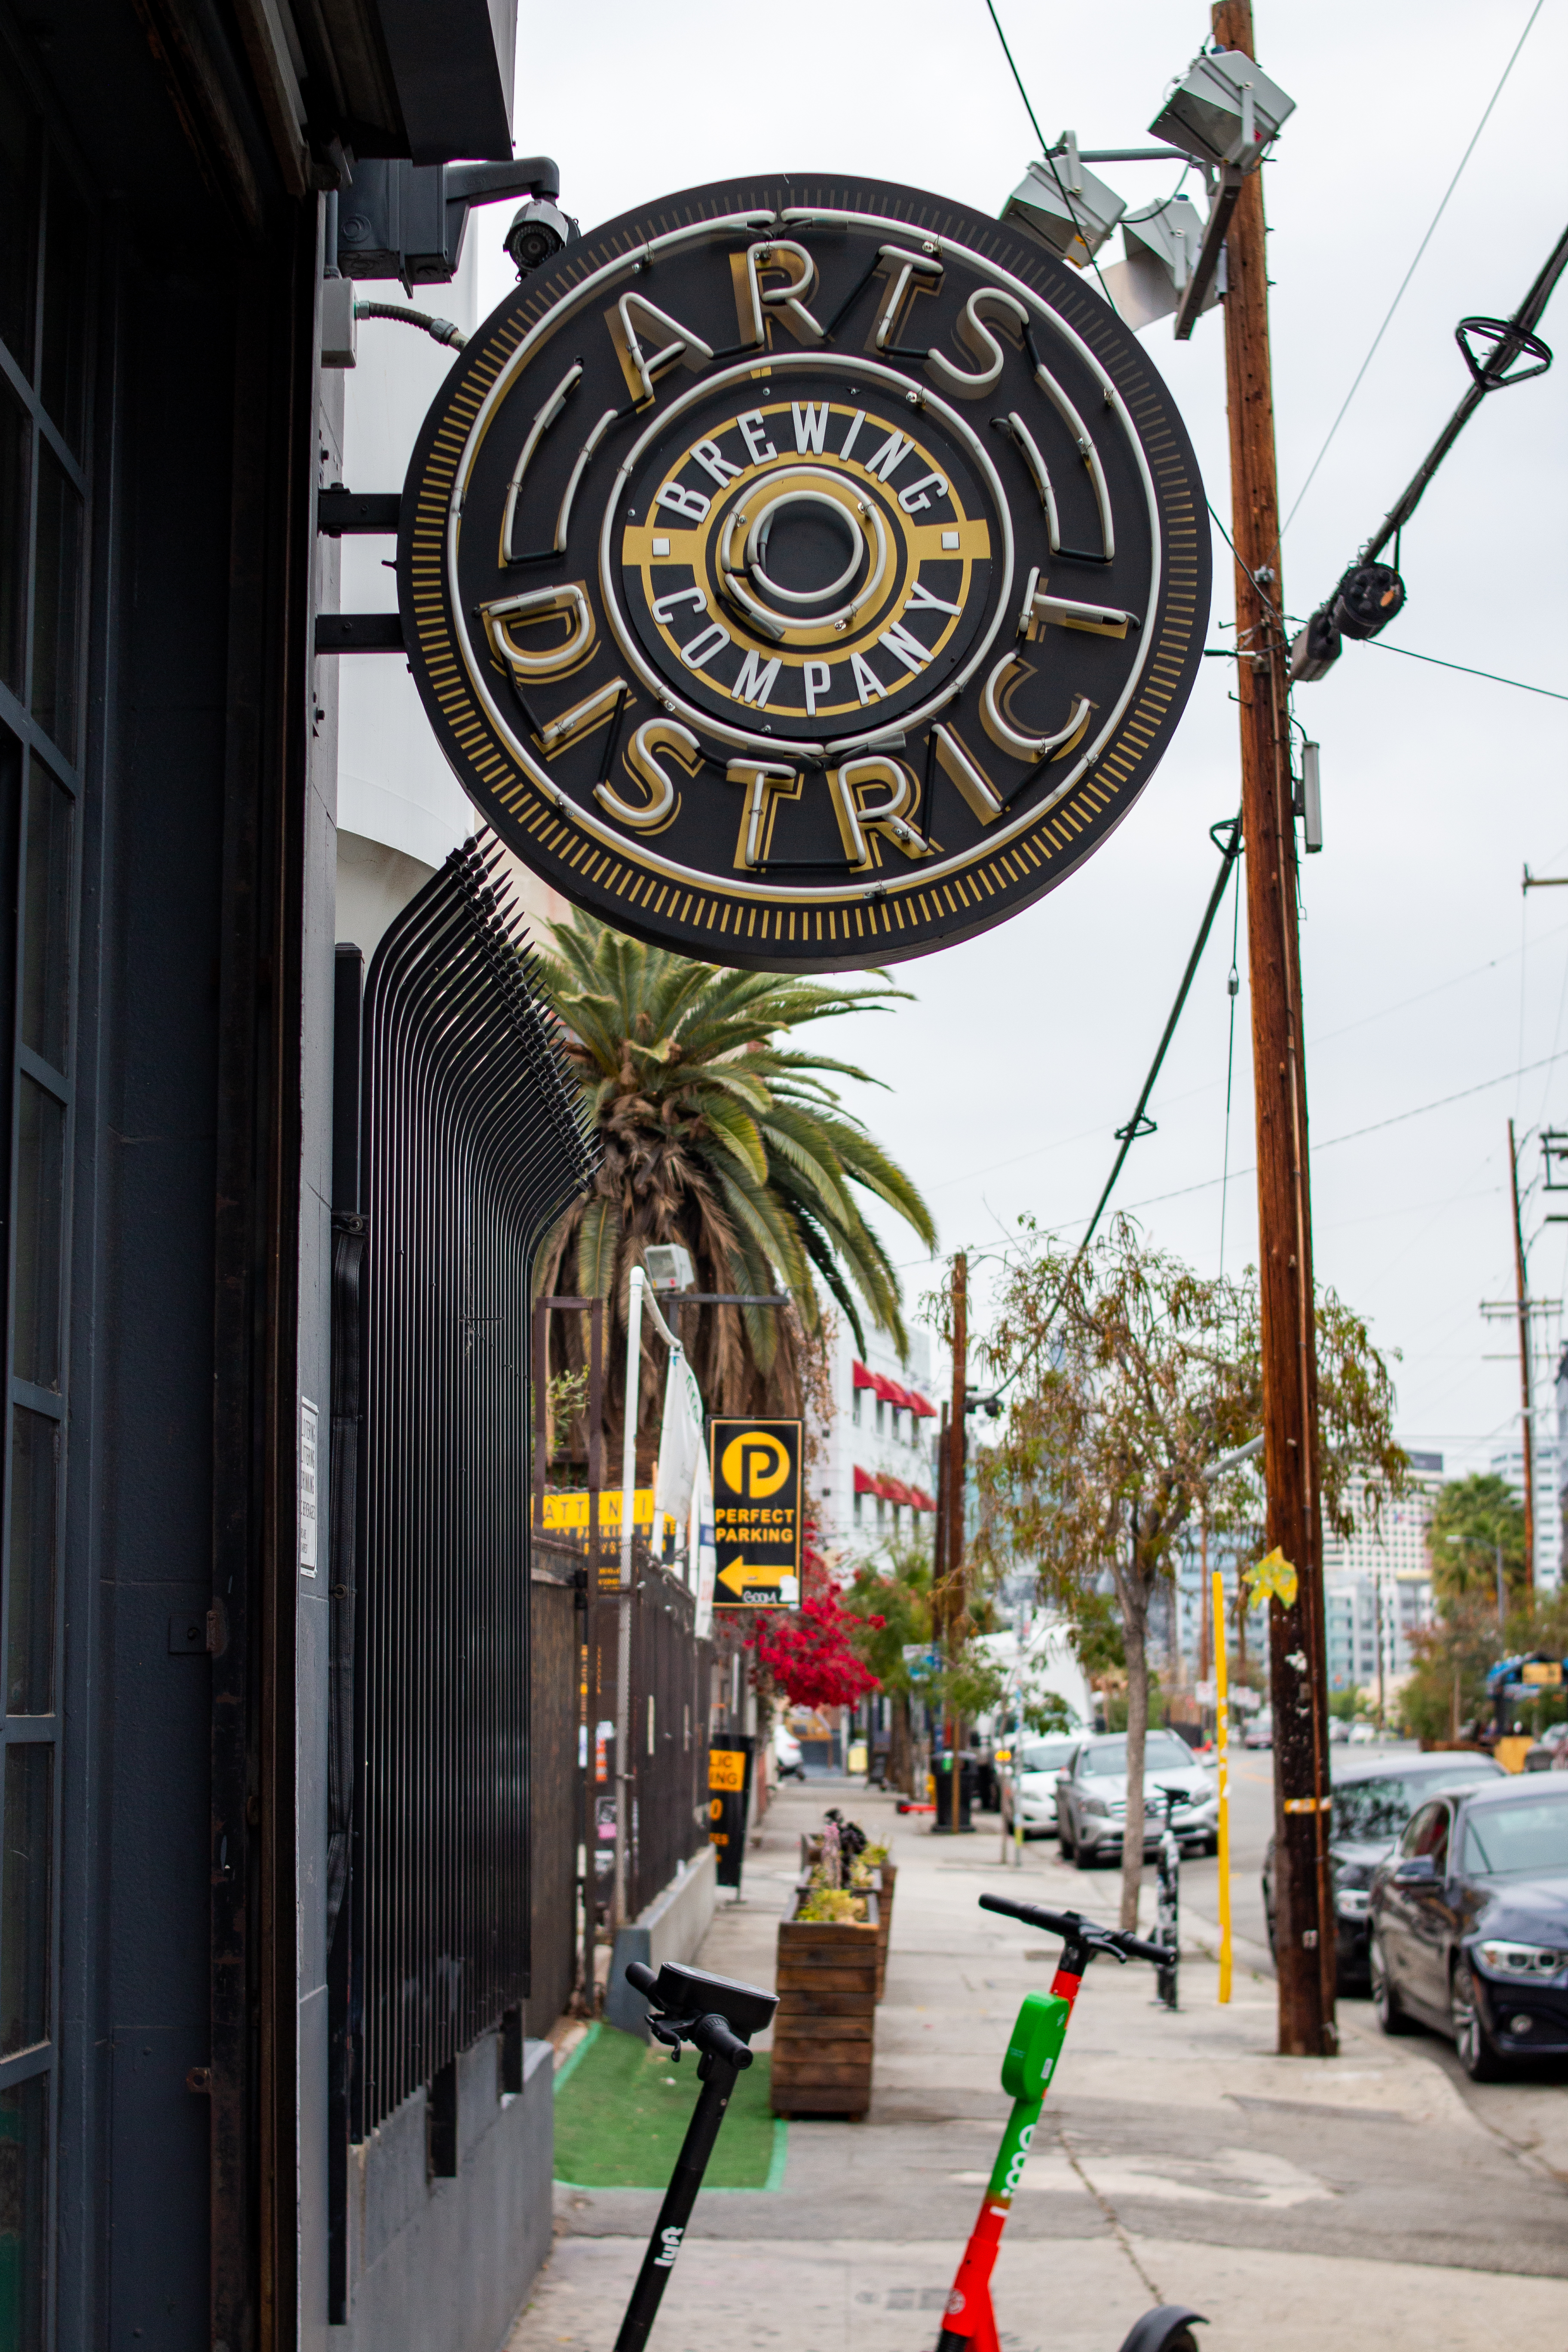 Map of L.A. zip codes highlights Arts District.